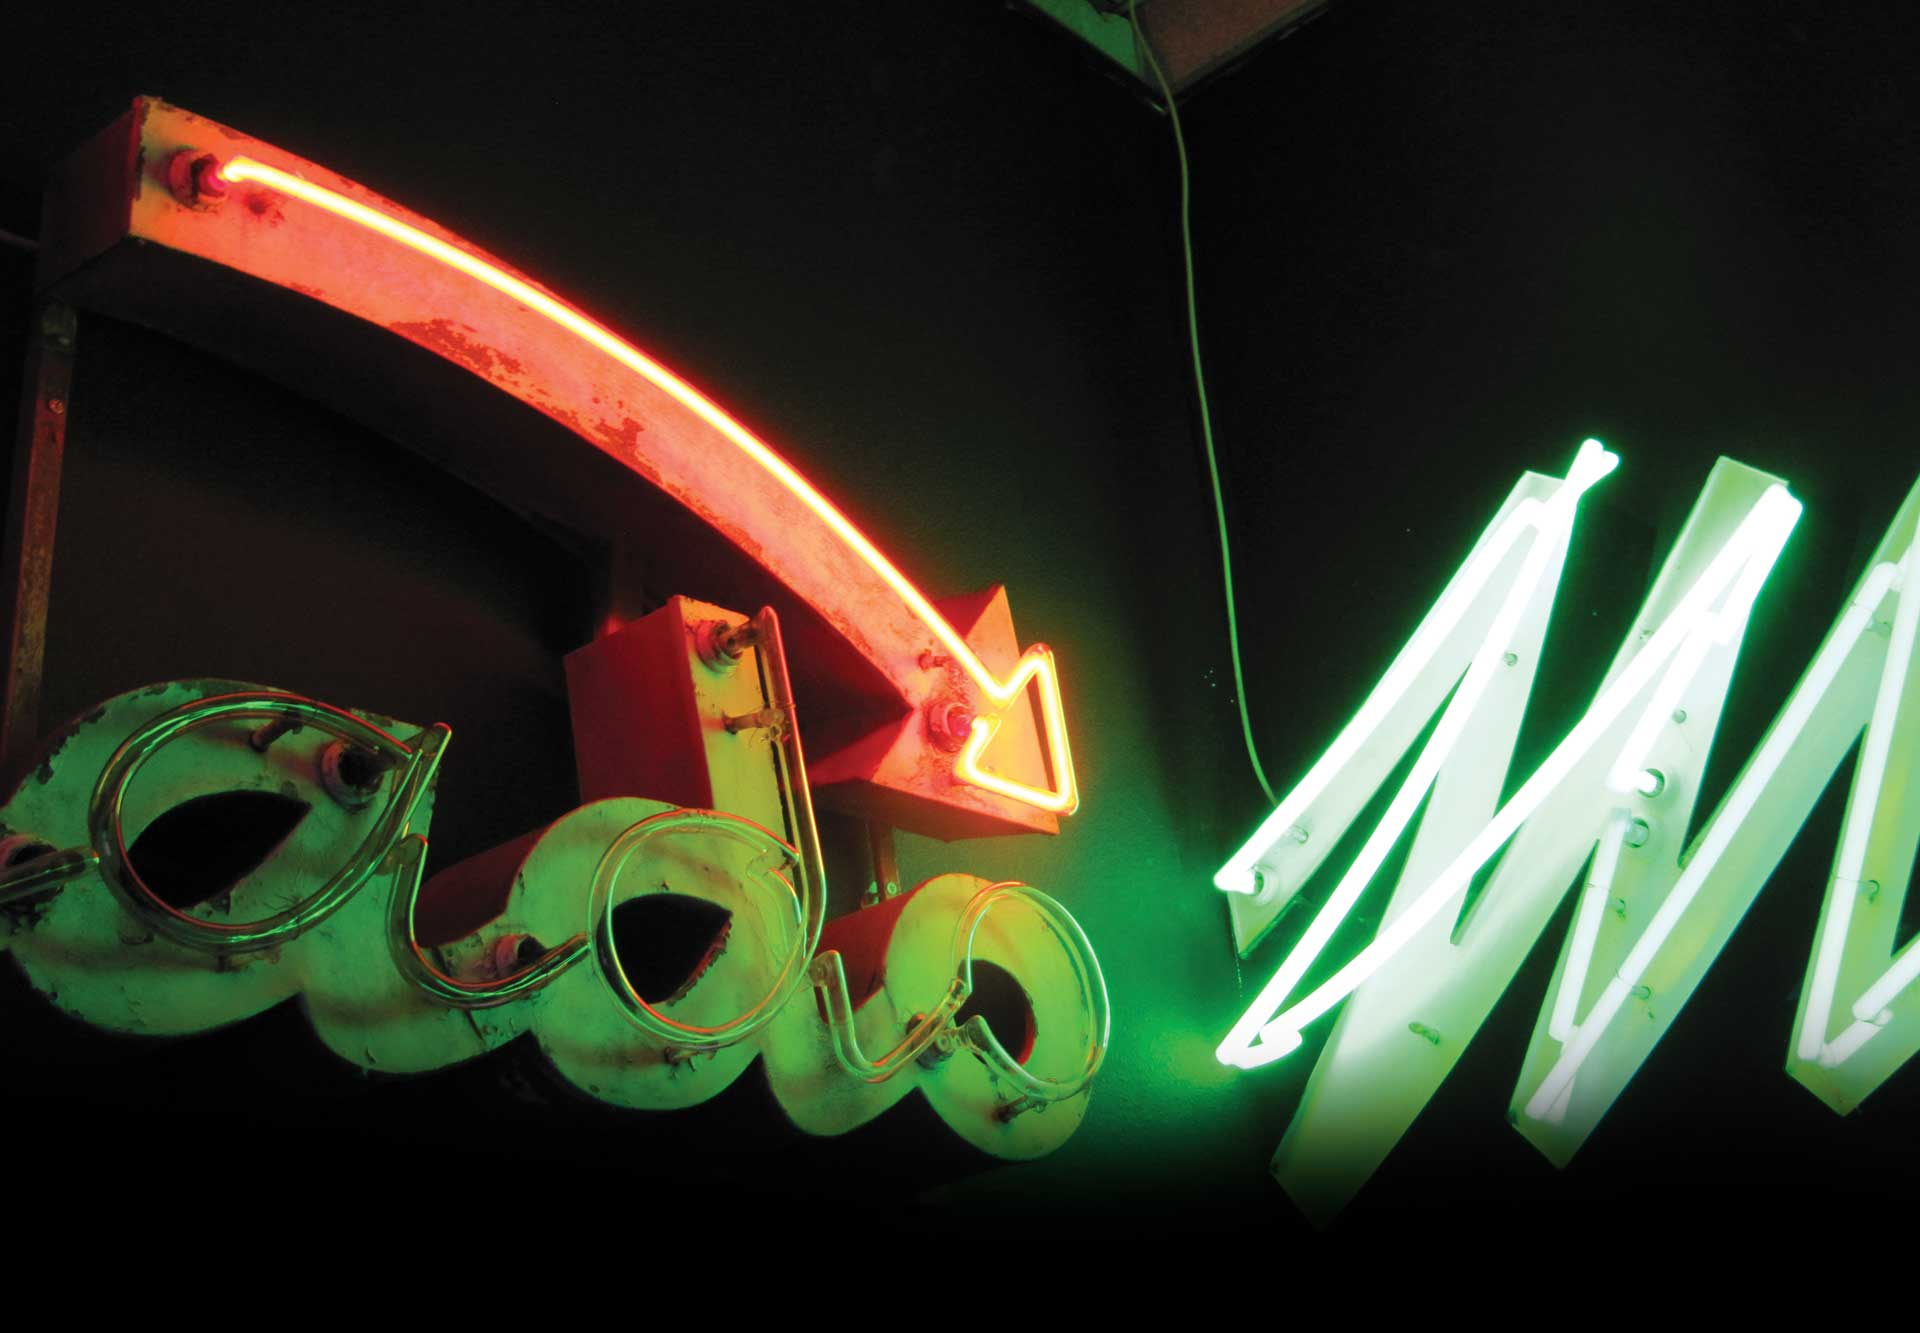 Details of an old neon